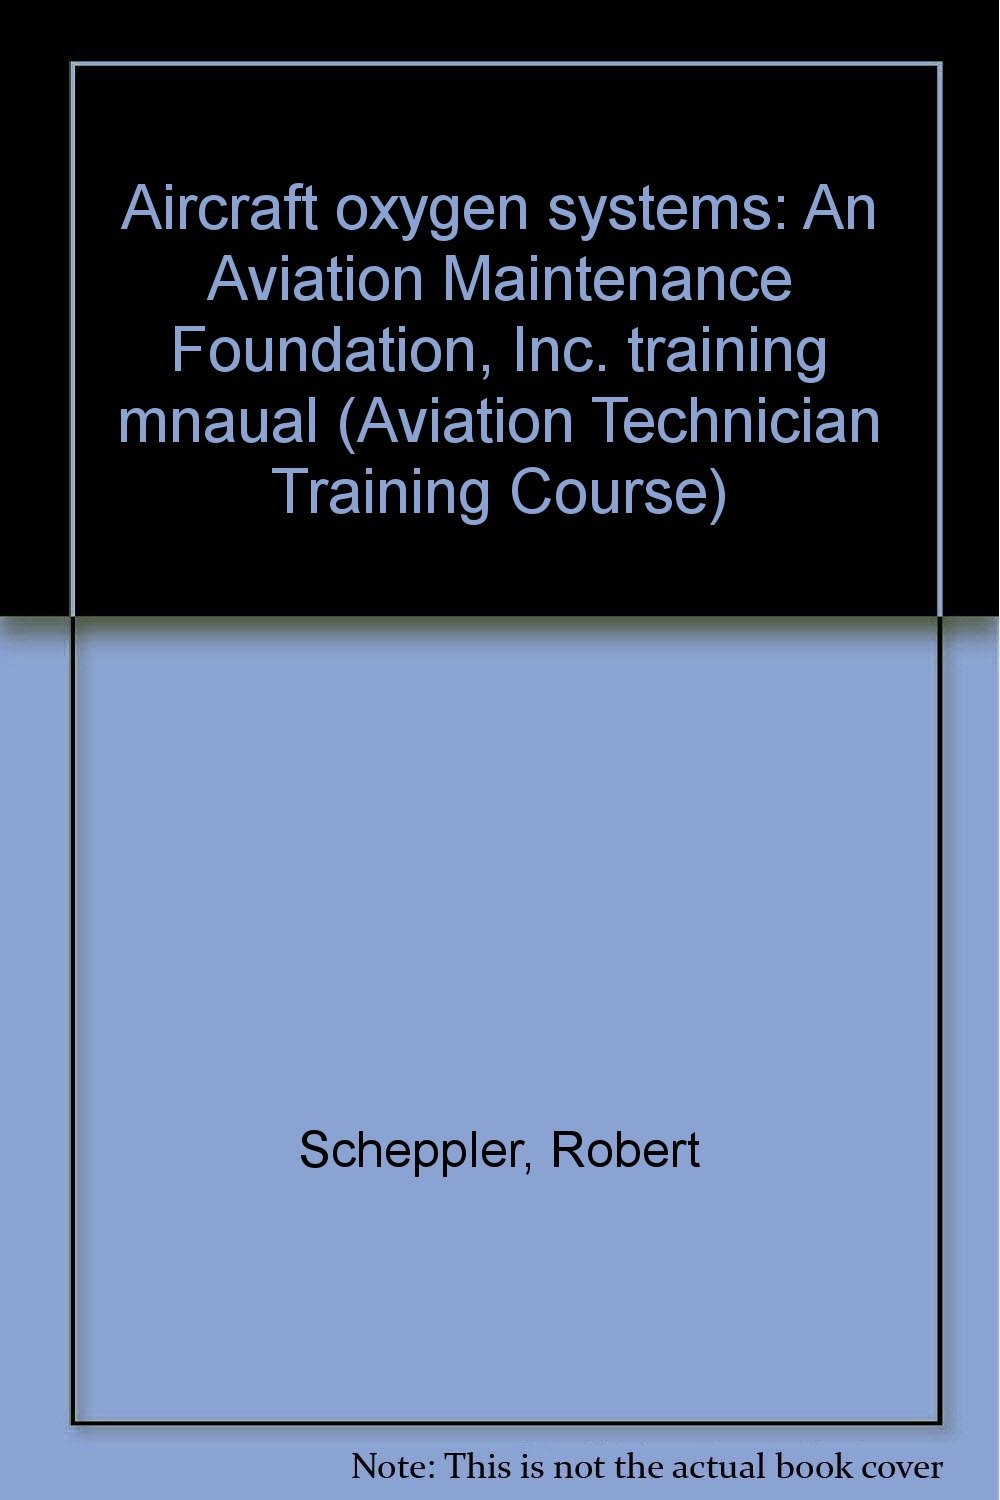 Aircraft oxygen systems: An Aviation Maintenance Foundation, Inc. training mnaual (Aviation Technician Training Course)